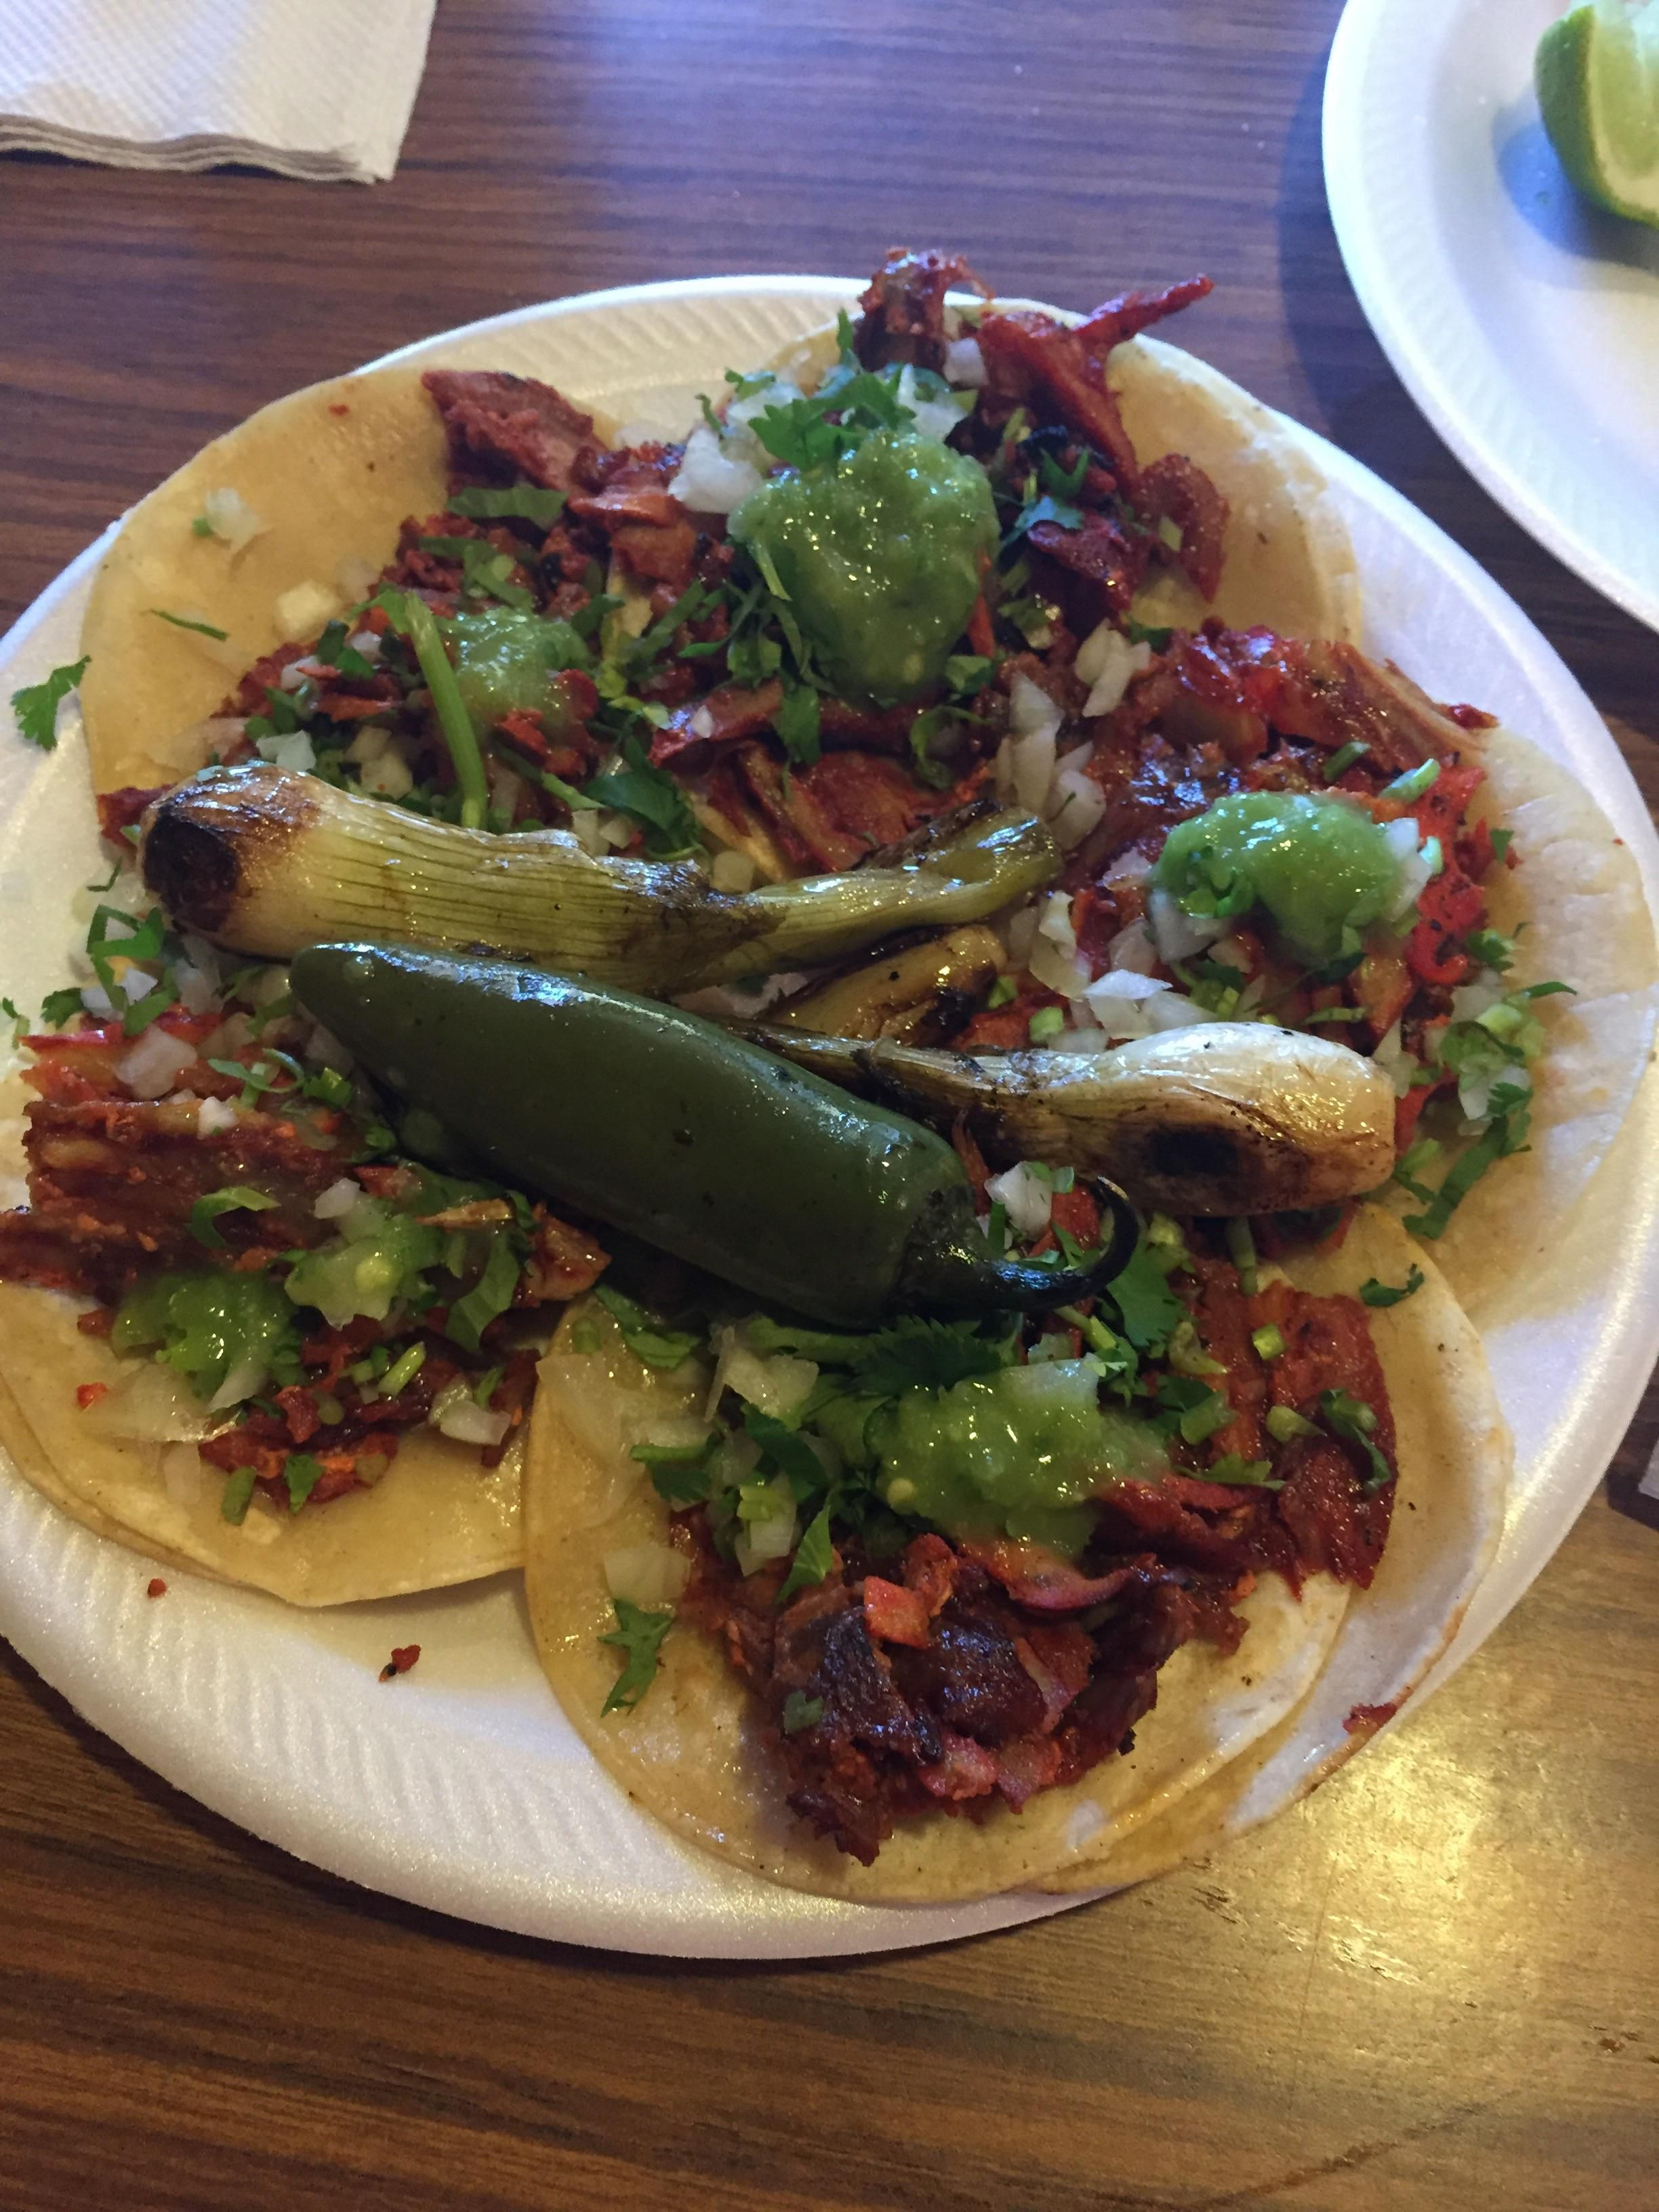 Hands Down The Best Tacos In Wichita Ks Tacos De Al Pastor Right Off Of The Trompo Fogon Taqueria If Youre Ever In Wichita M Mexican Food Recipes Tacos Food